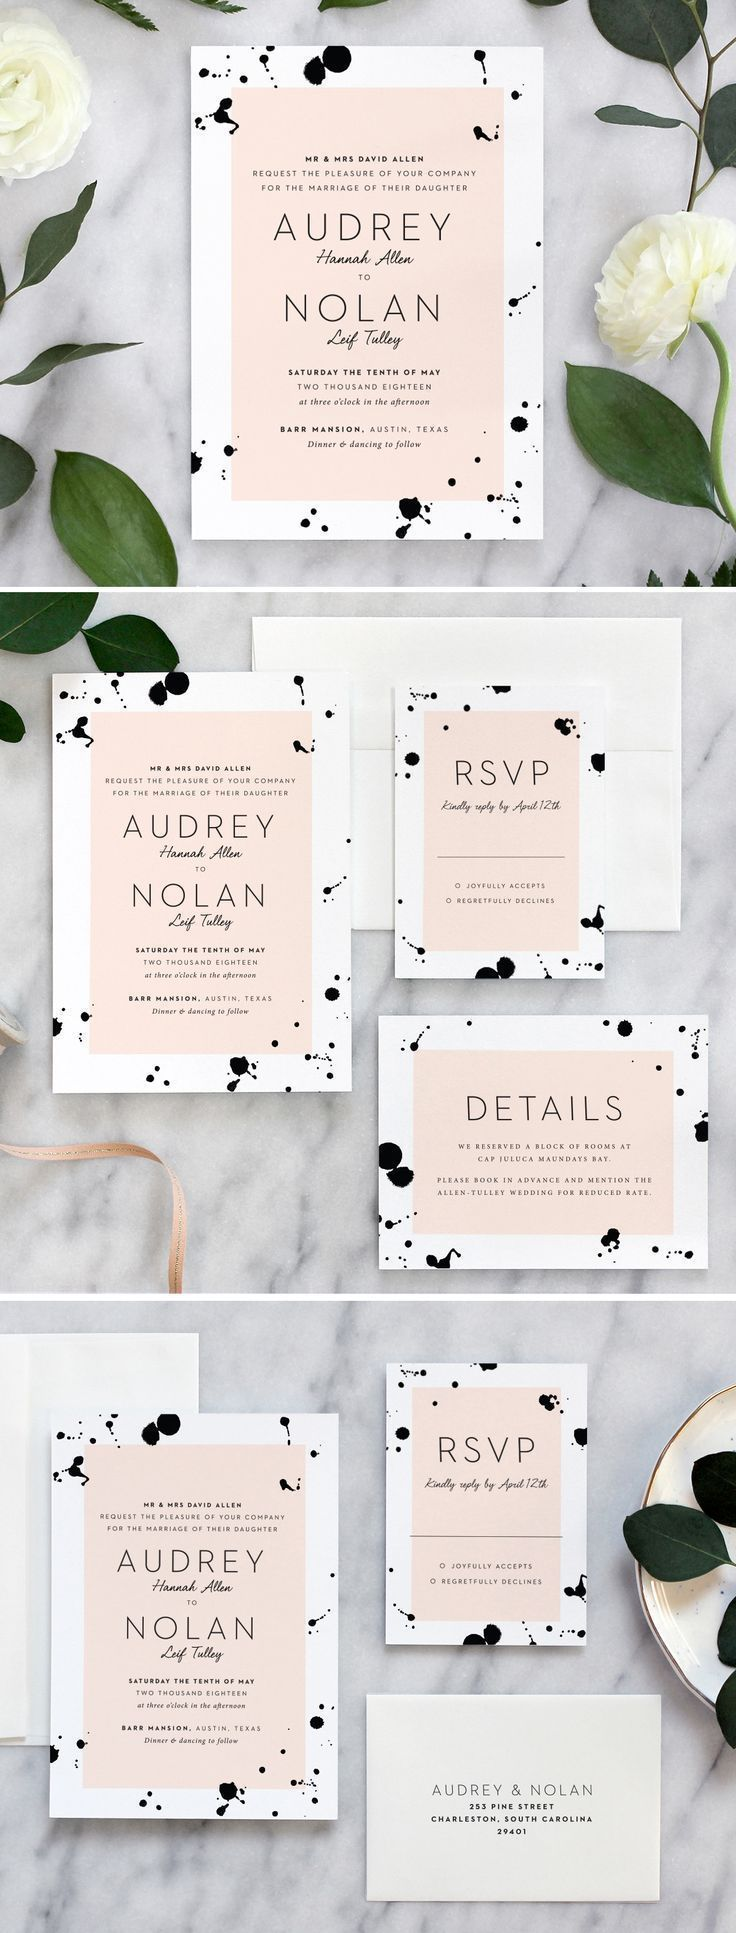 Artistic and modern wedding invitation suite by